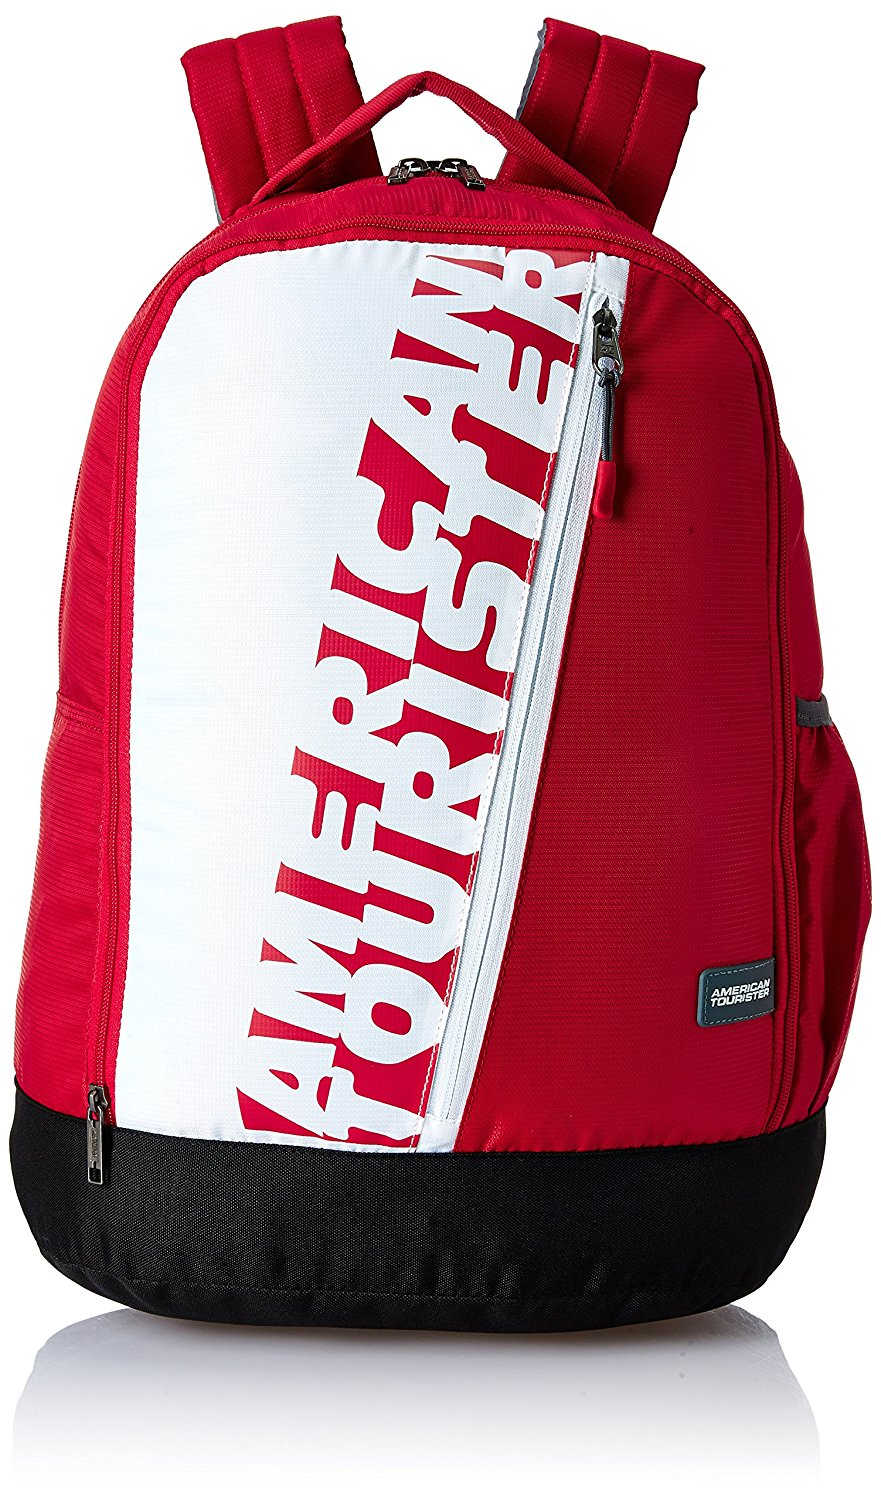 American Tourister 28 Ltrs Red Laptop Backpack